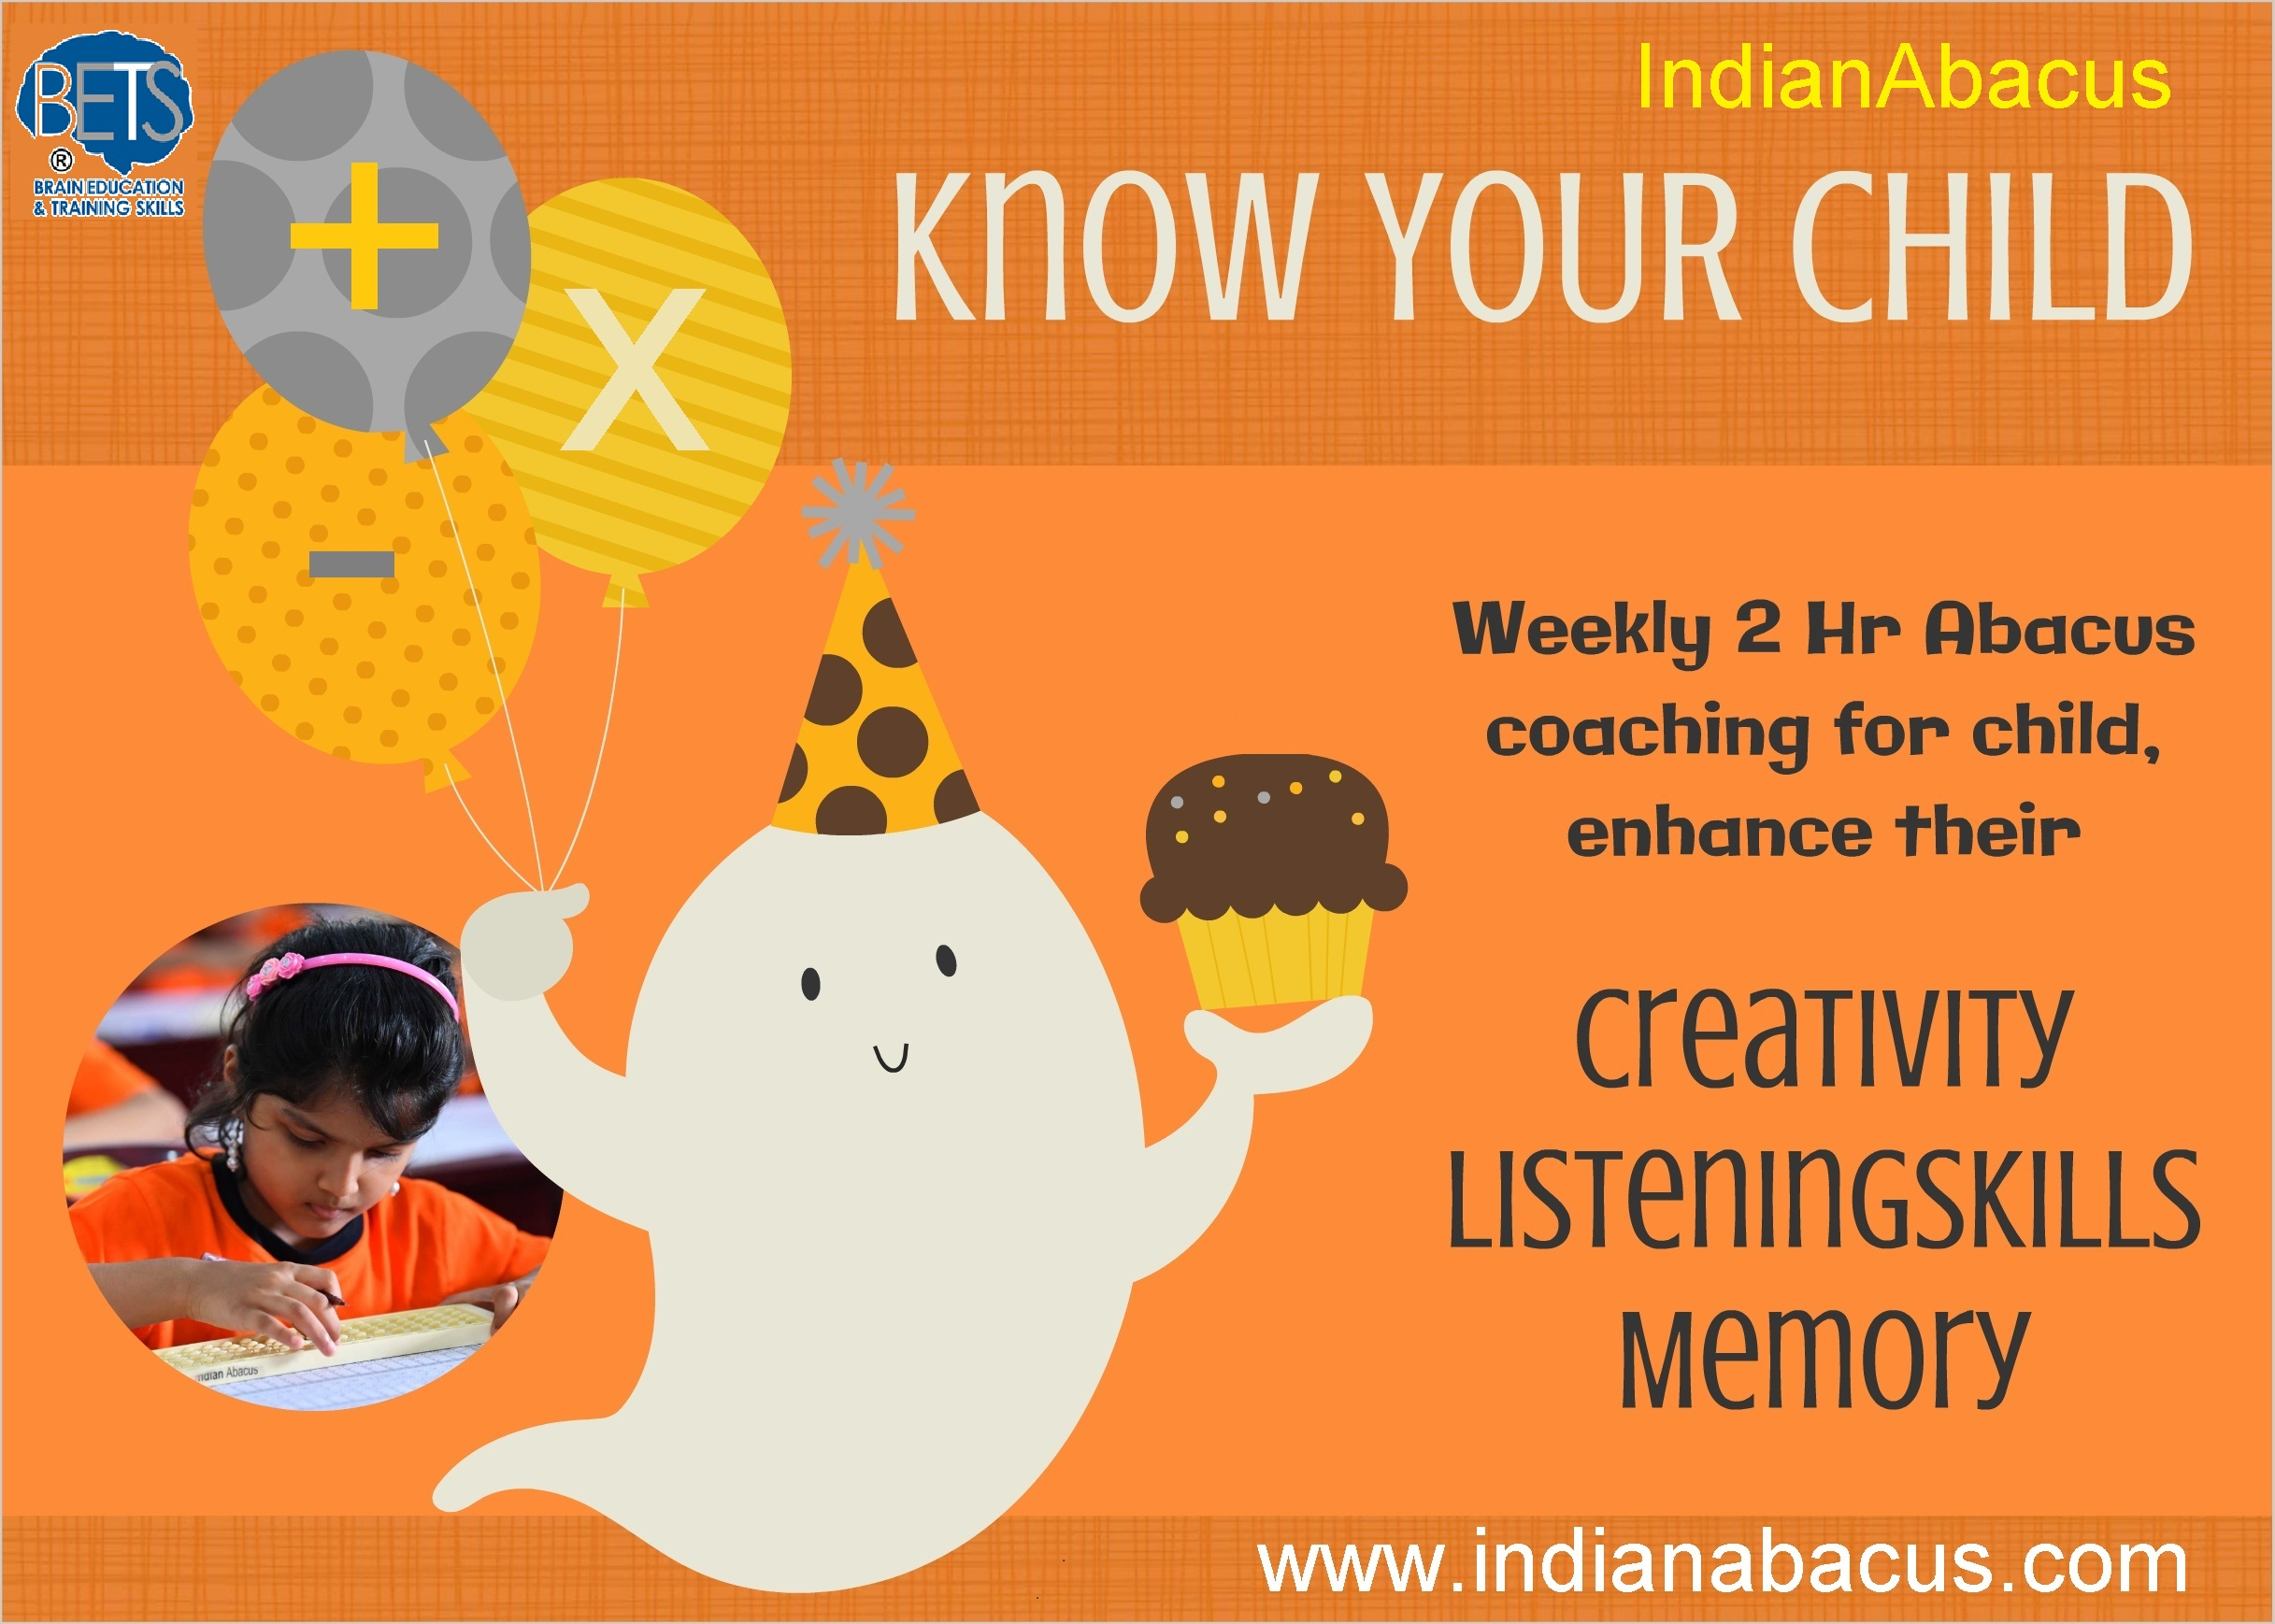 Weekly 2 Hr Abacus coaching for child, e